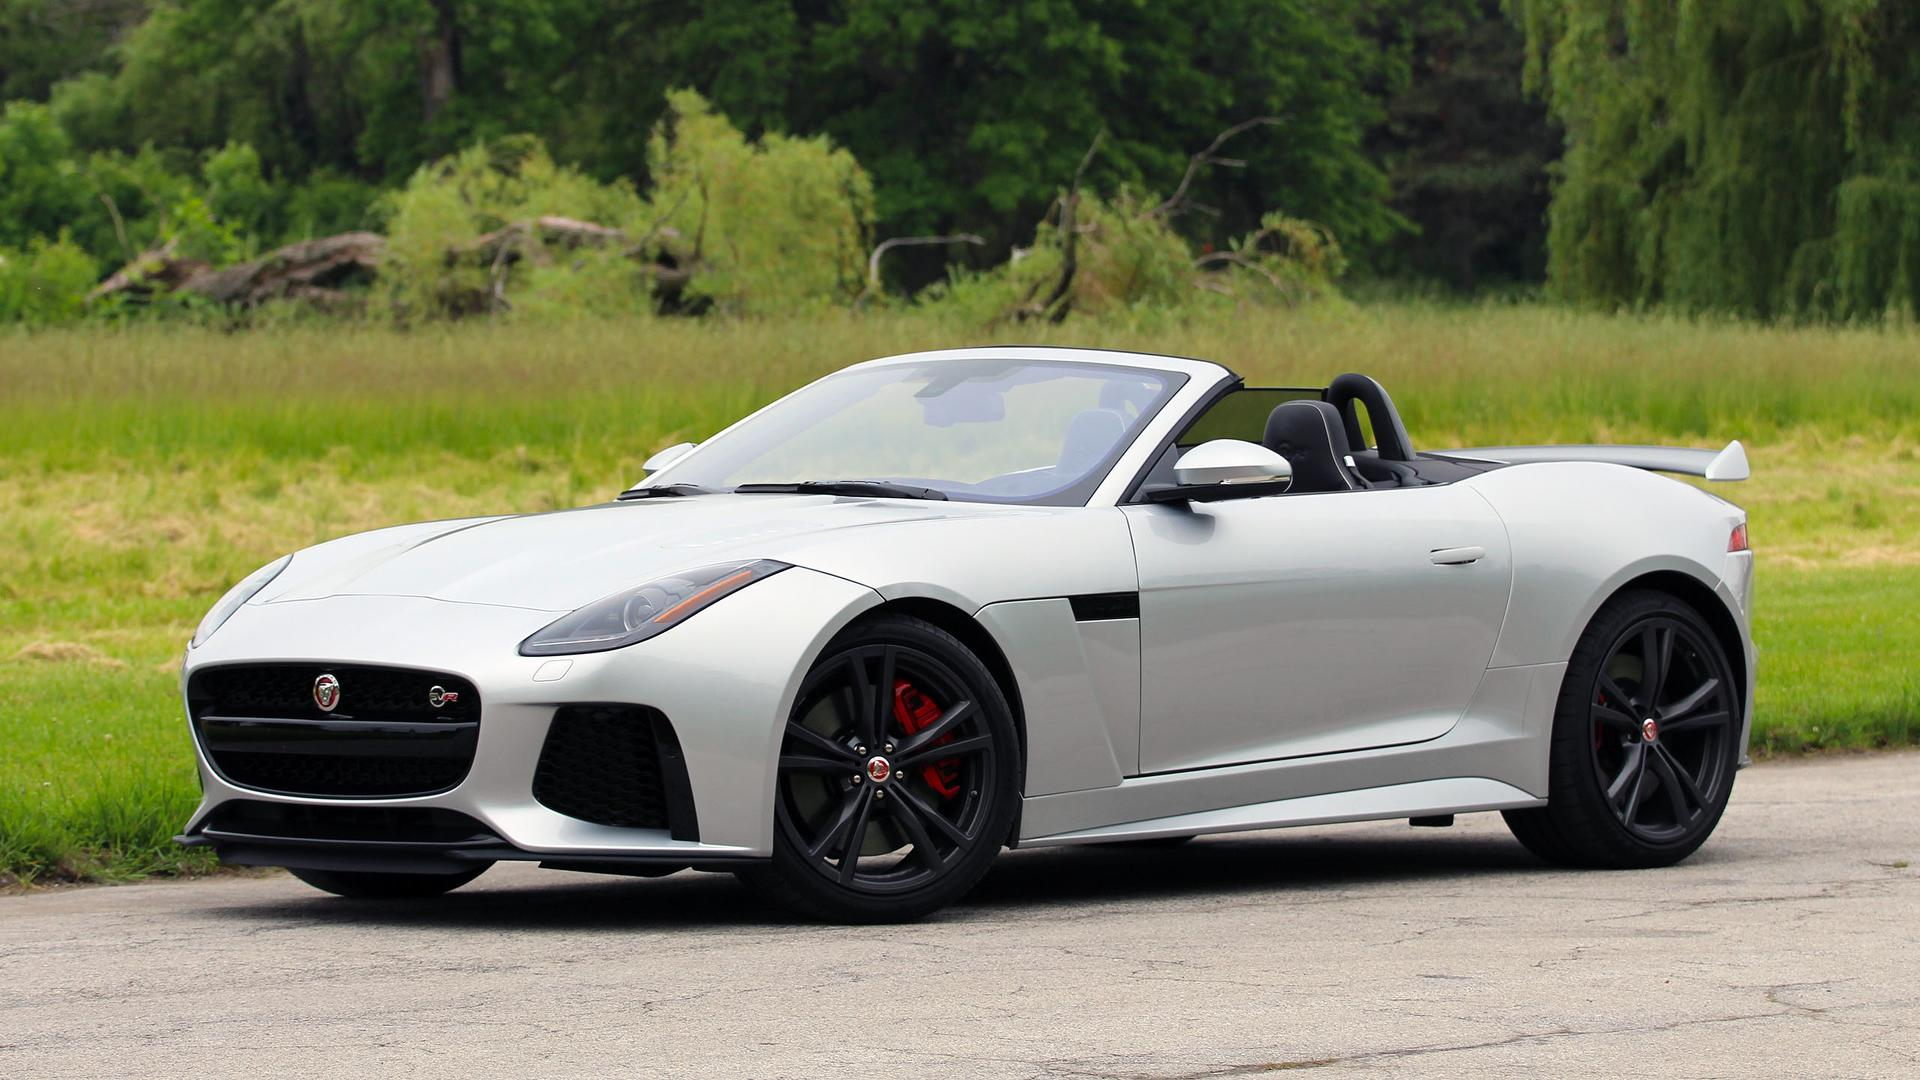 2017 Jaguar F Type SVR Convertible Review: Why Itu0027s Better To Go Topless